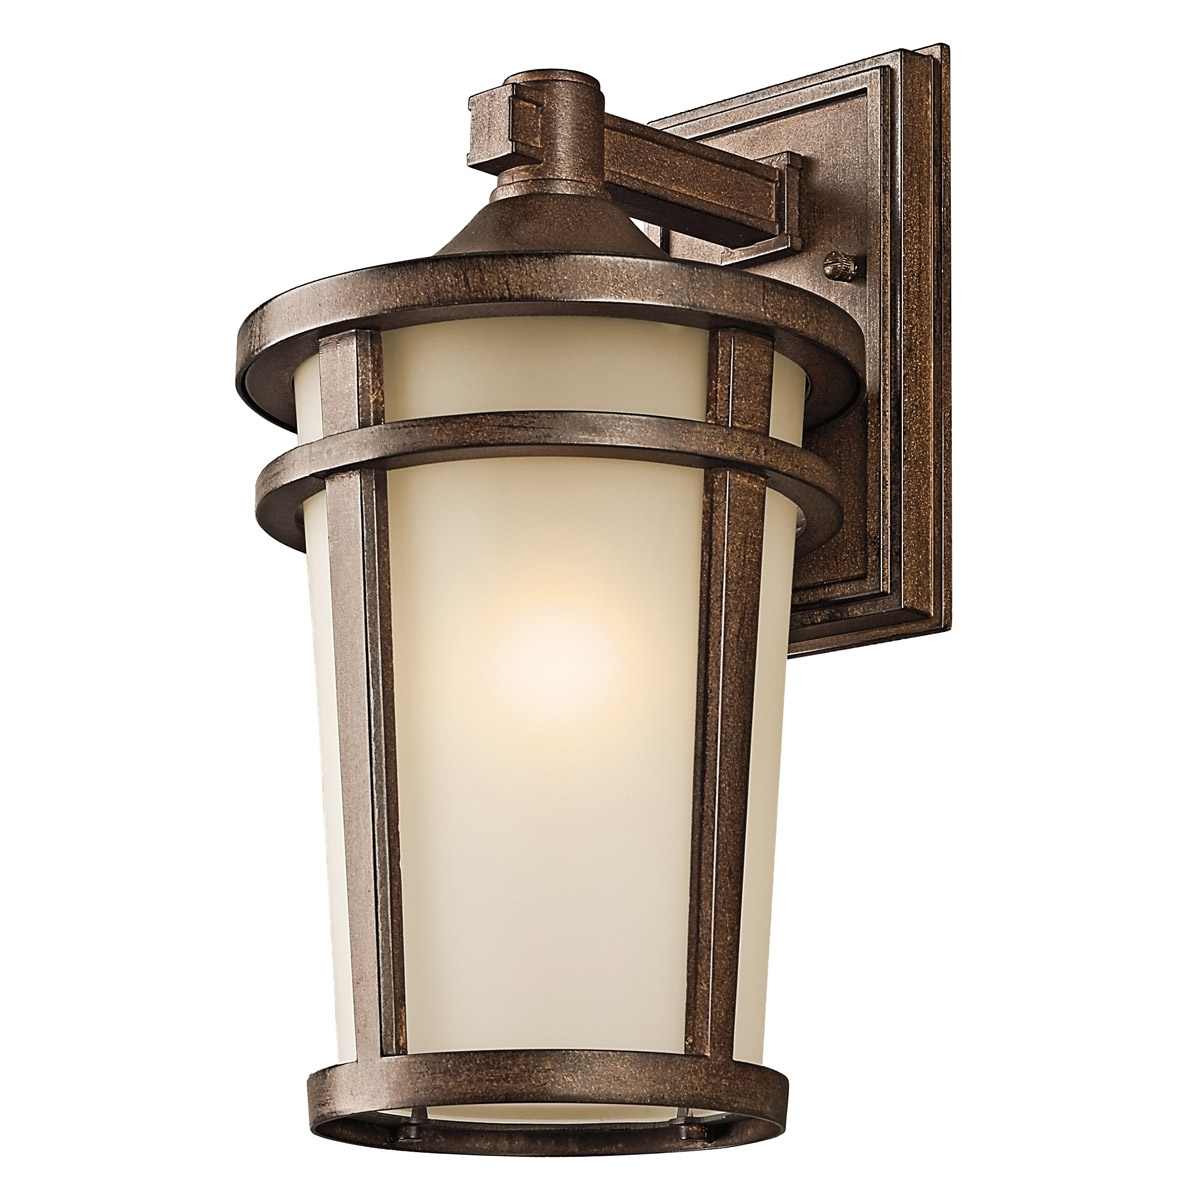 Newest Outdoor Mounted Lanterns Inside Kichler 49072Bst Atwood Outdoor Wall Mount Lantern (View 16 of 20)